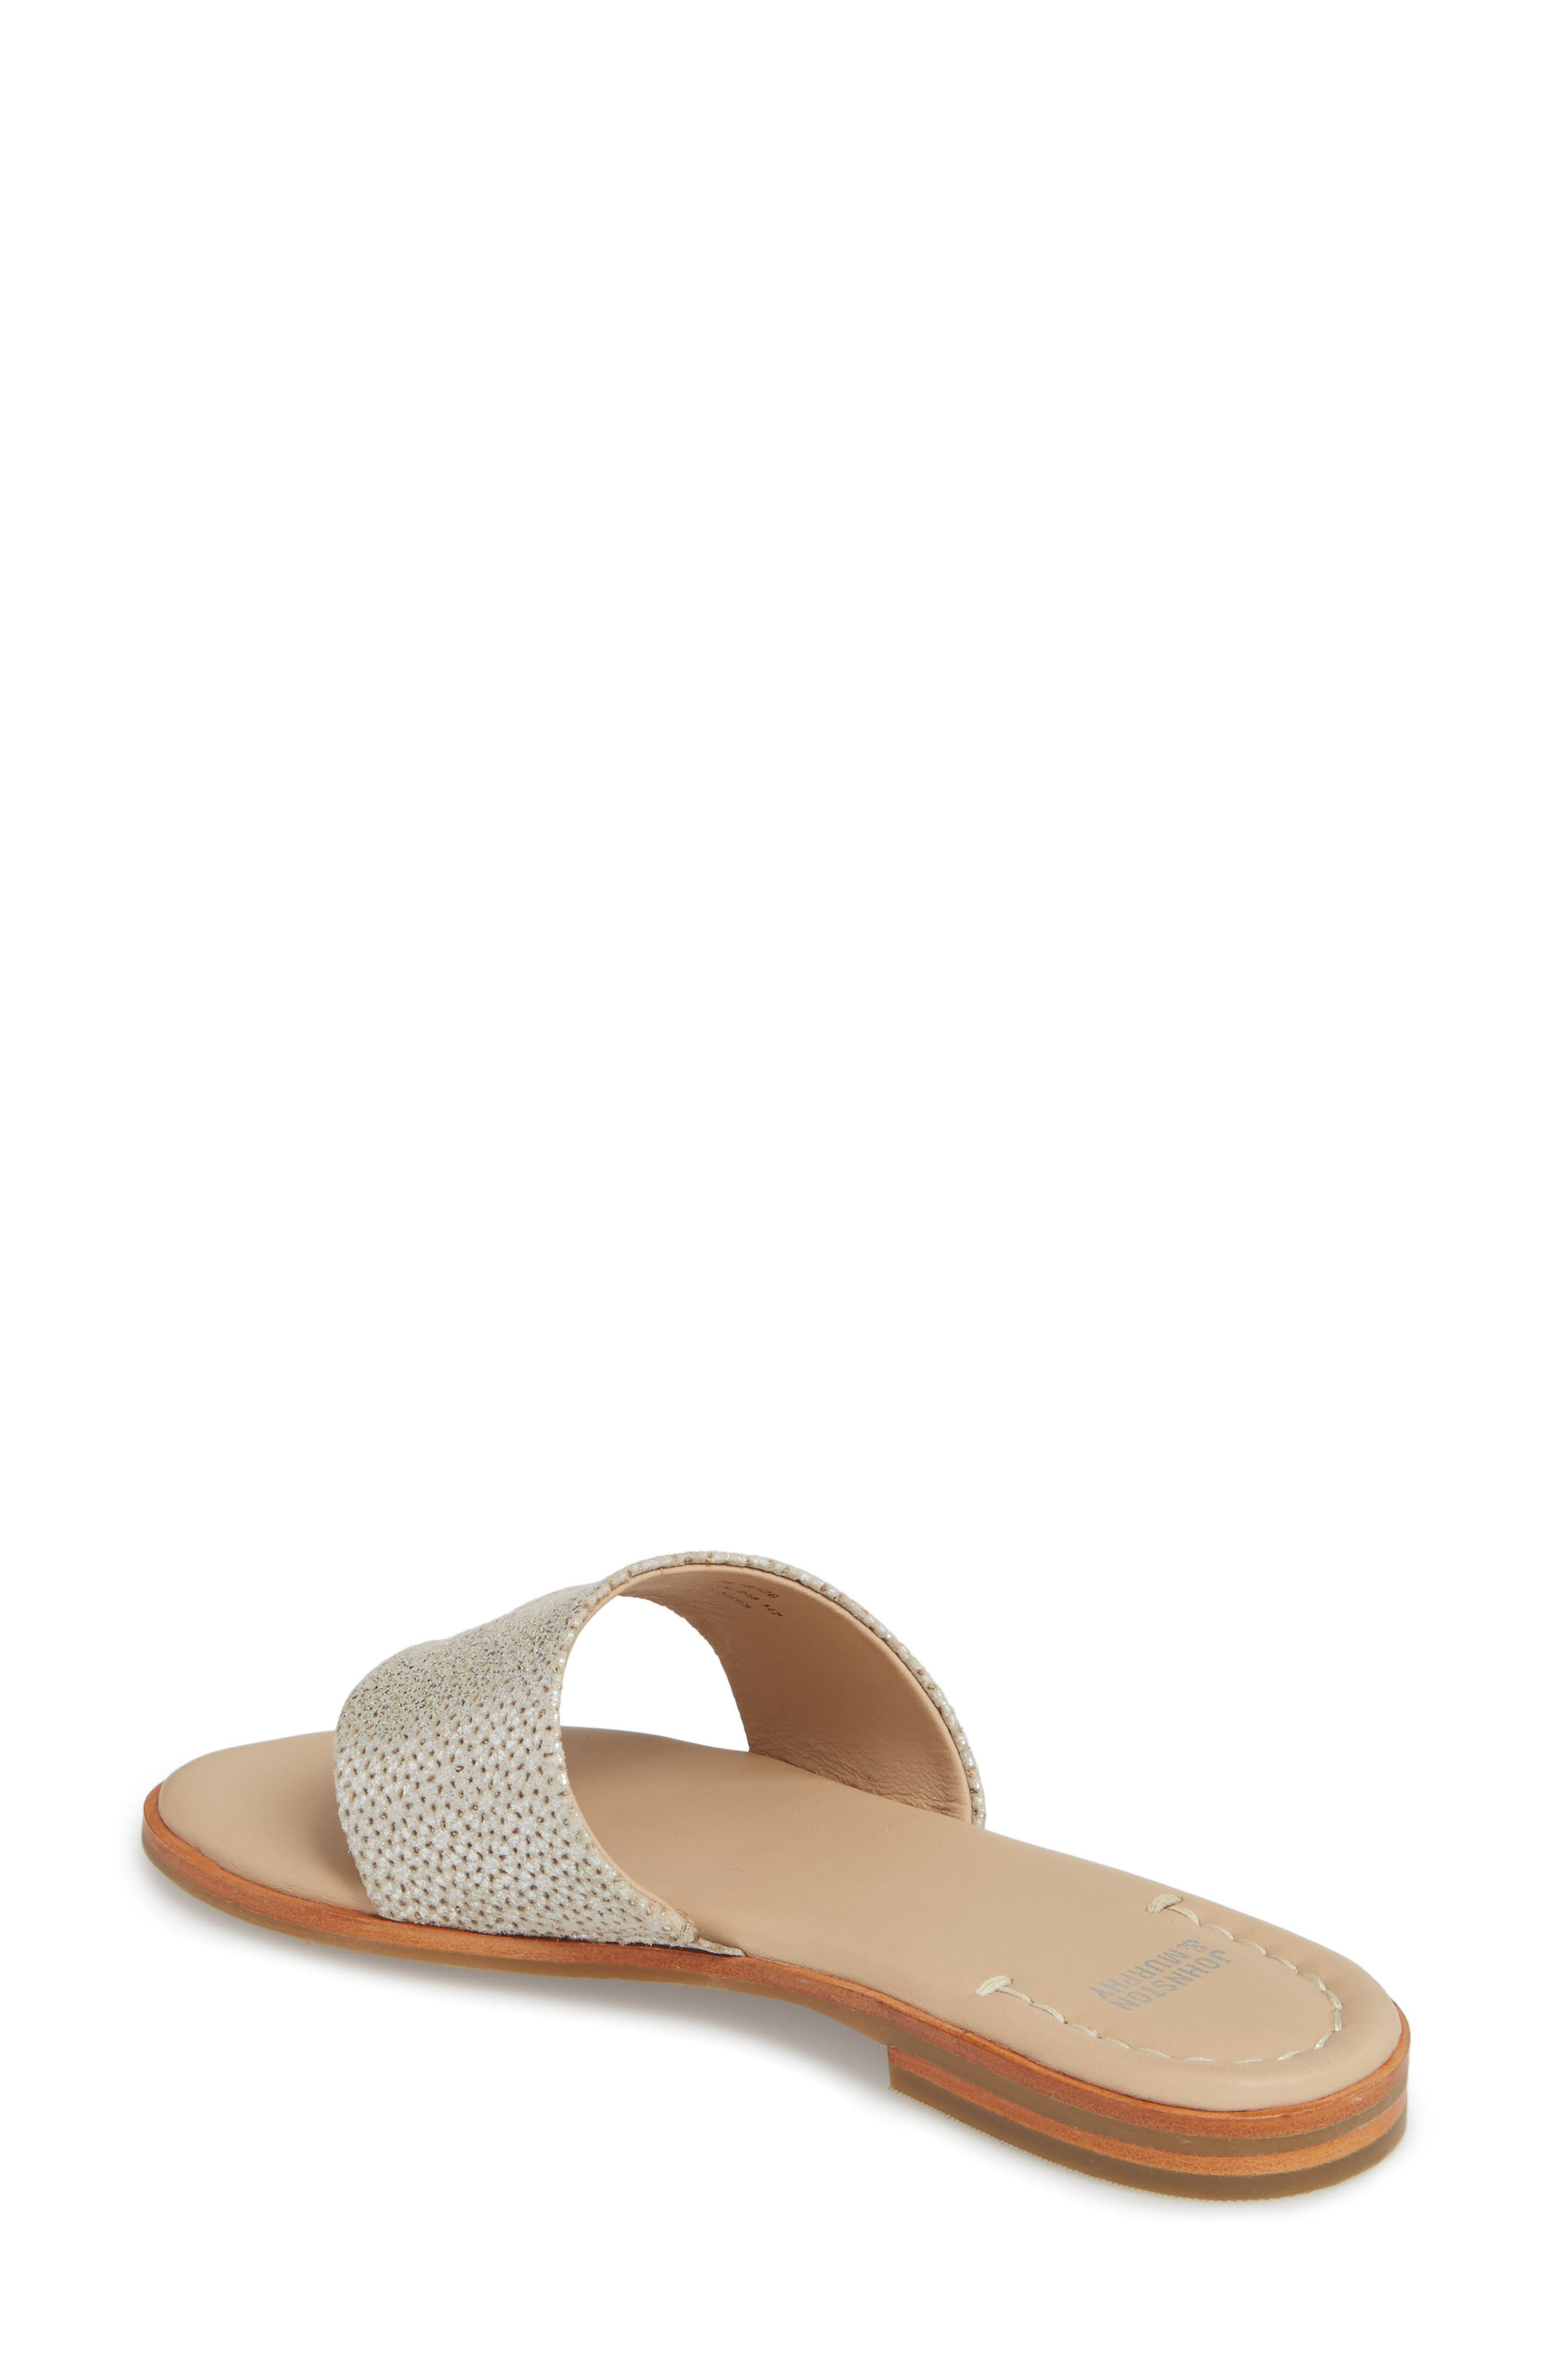 Raney Flip Flop,                             Alternate thumbnail 2, color,                             SILVER LASER CUT SUEDE